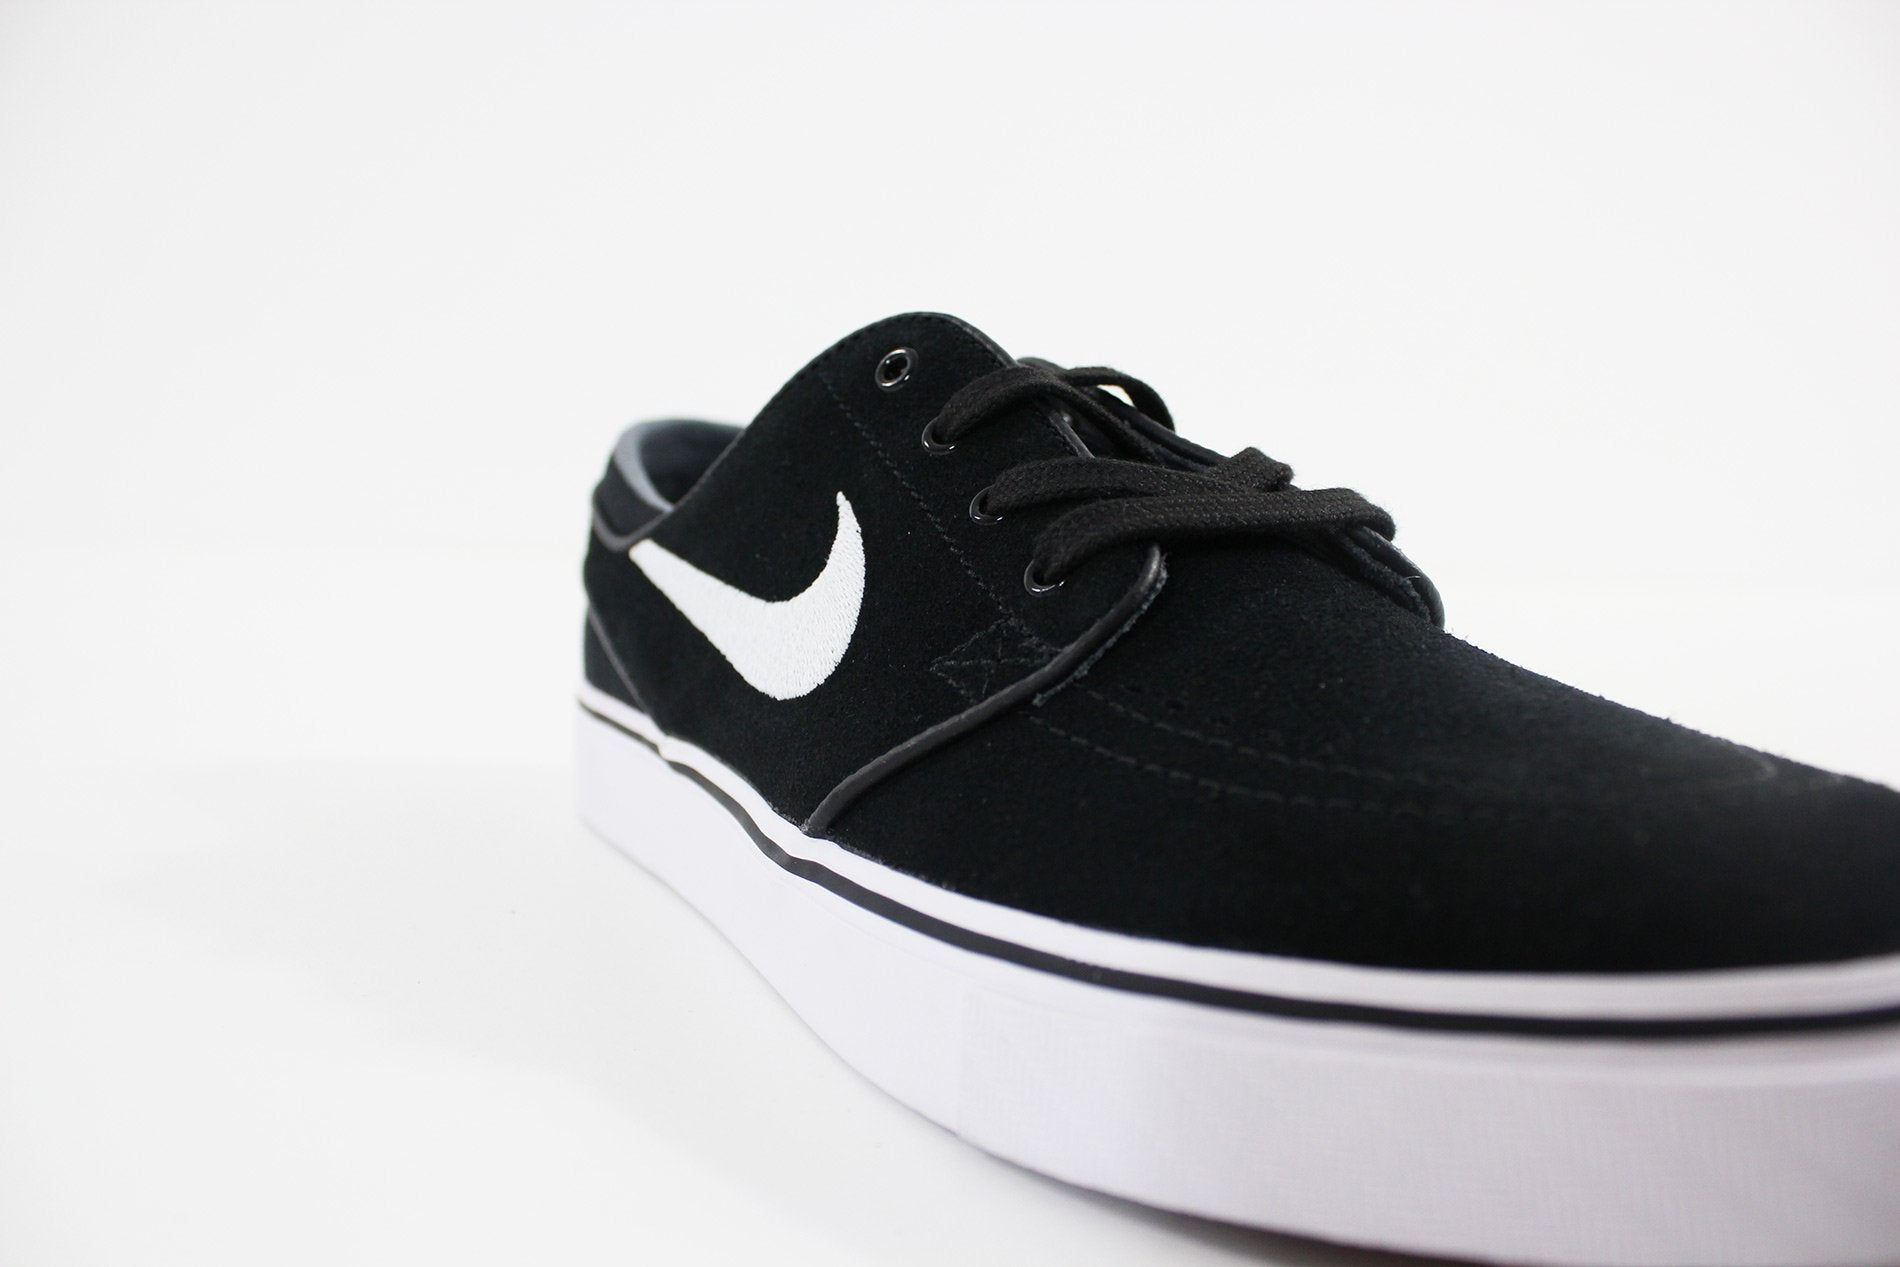 pretty nice 08de4 7095a Nike - Men s Nike SB Zoom Stefan Janoski Skateboarding Shoe (BLACK WHITE)  333824-026